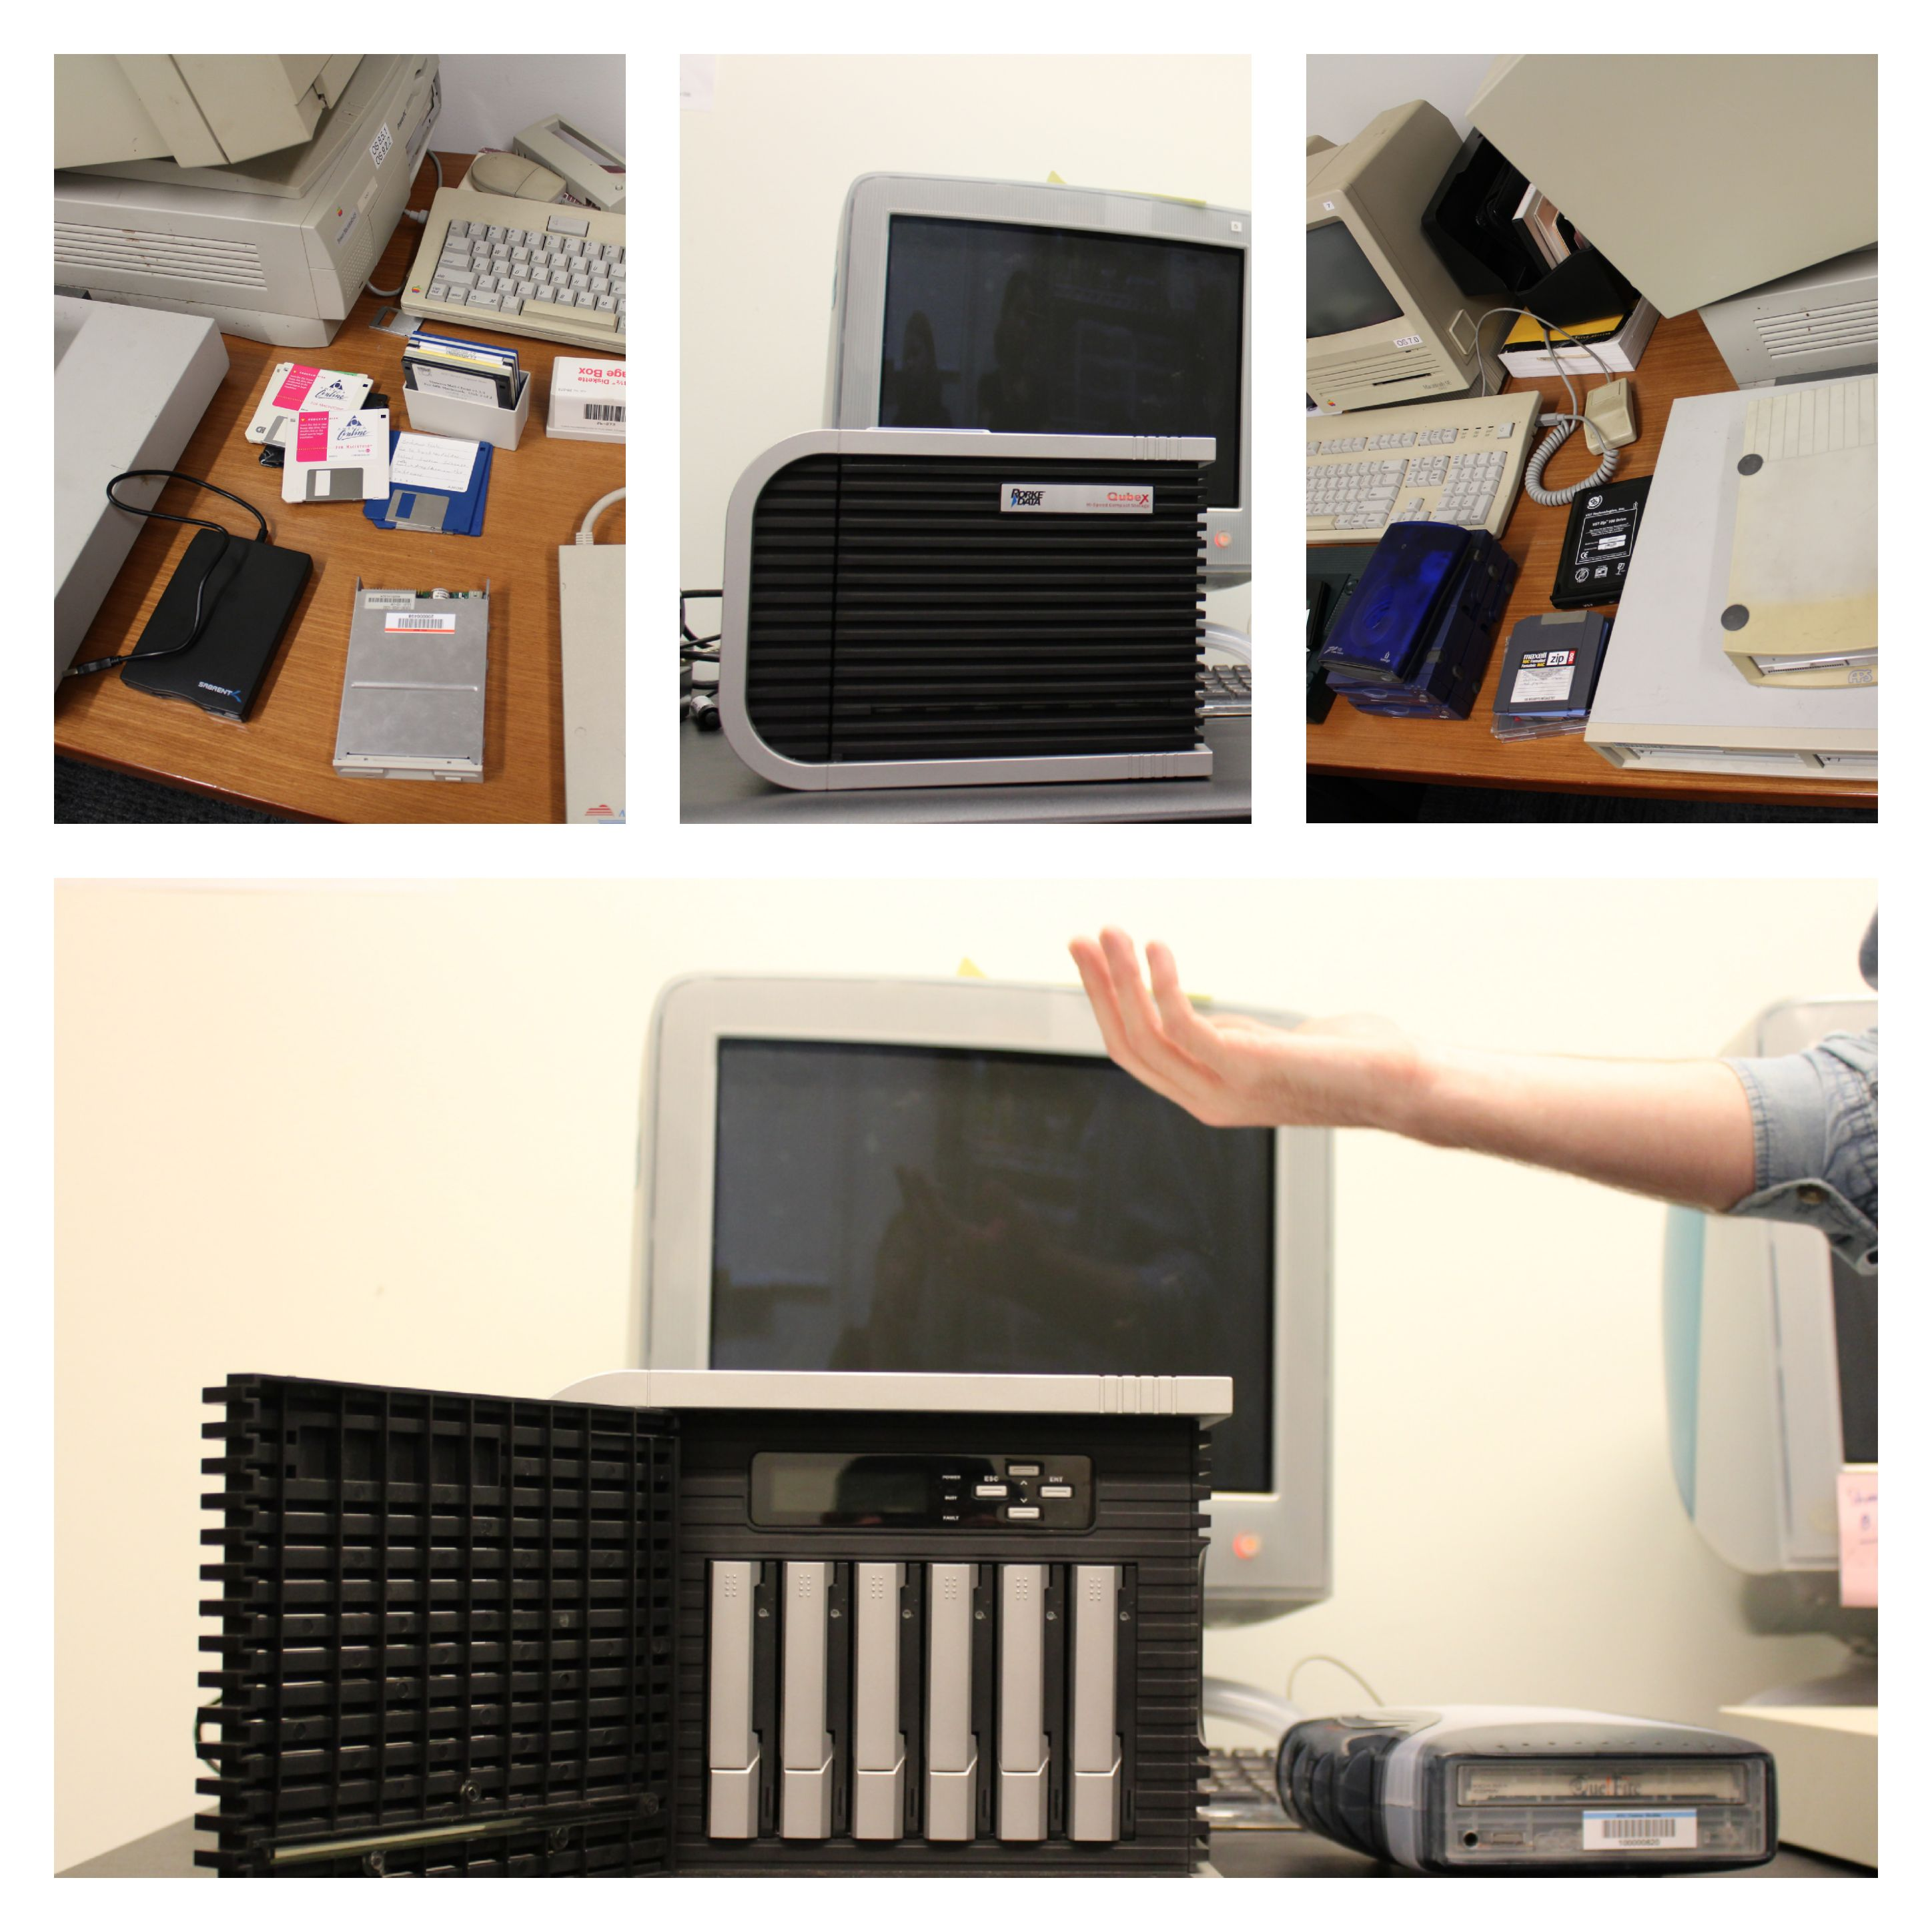 Photos of legacy and contemporary computing and storage hardware used in NYU MIAP's Digital Preservation course.